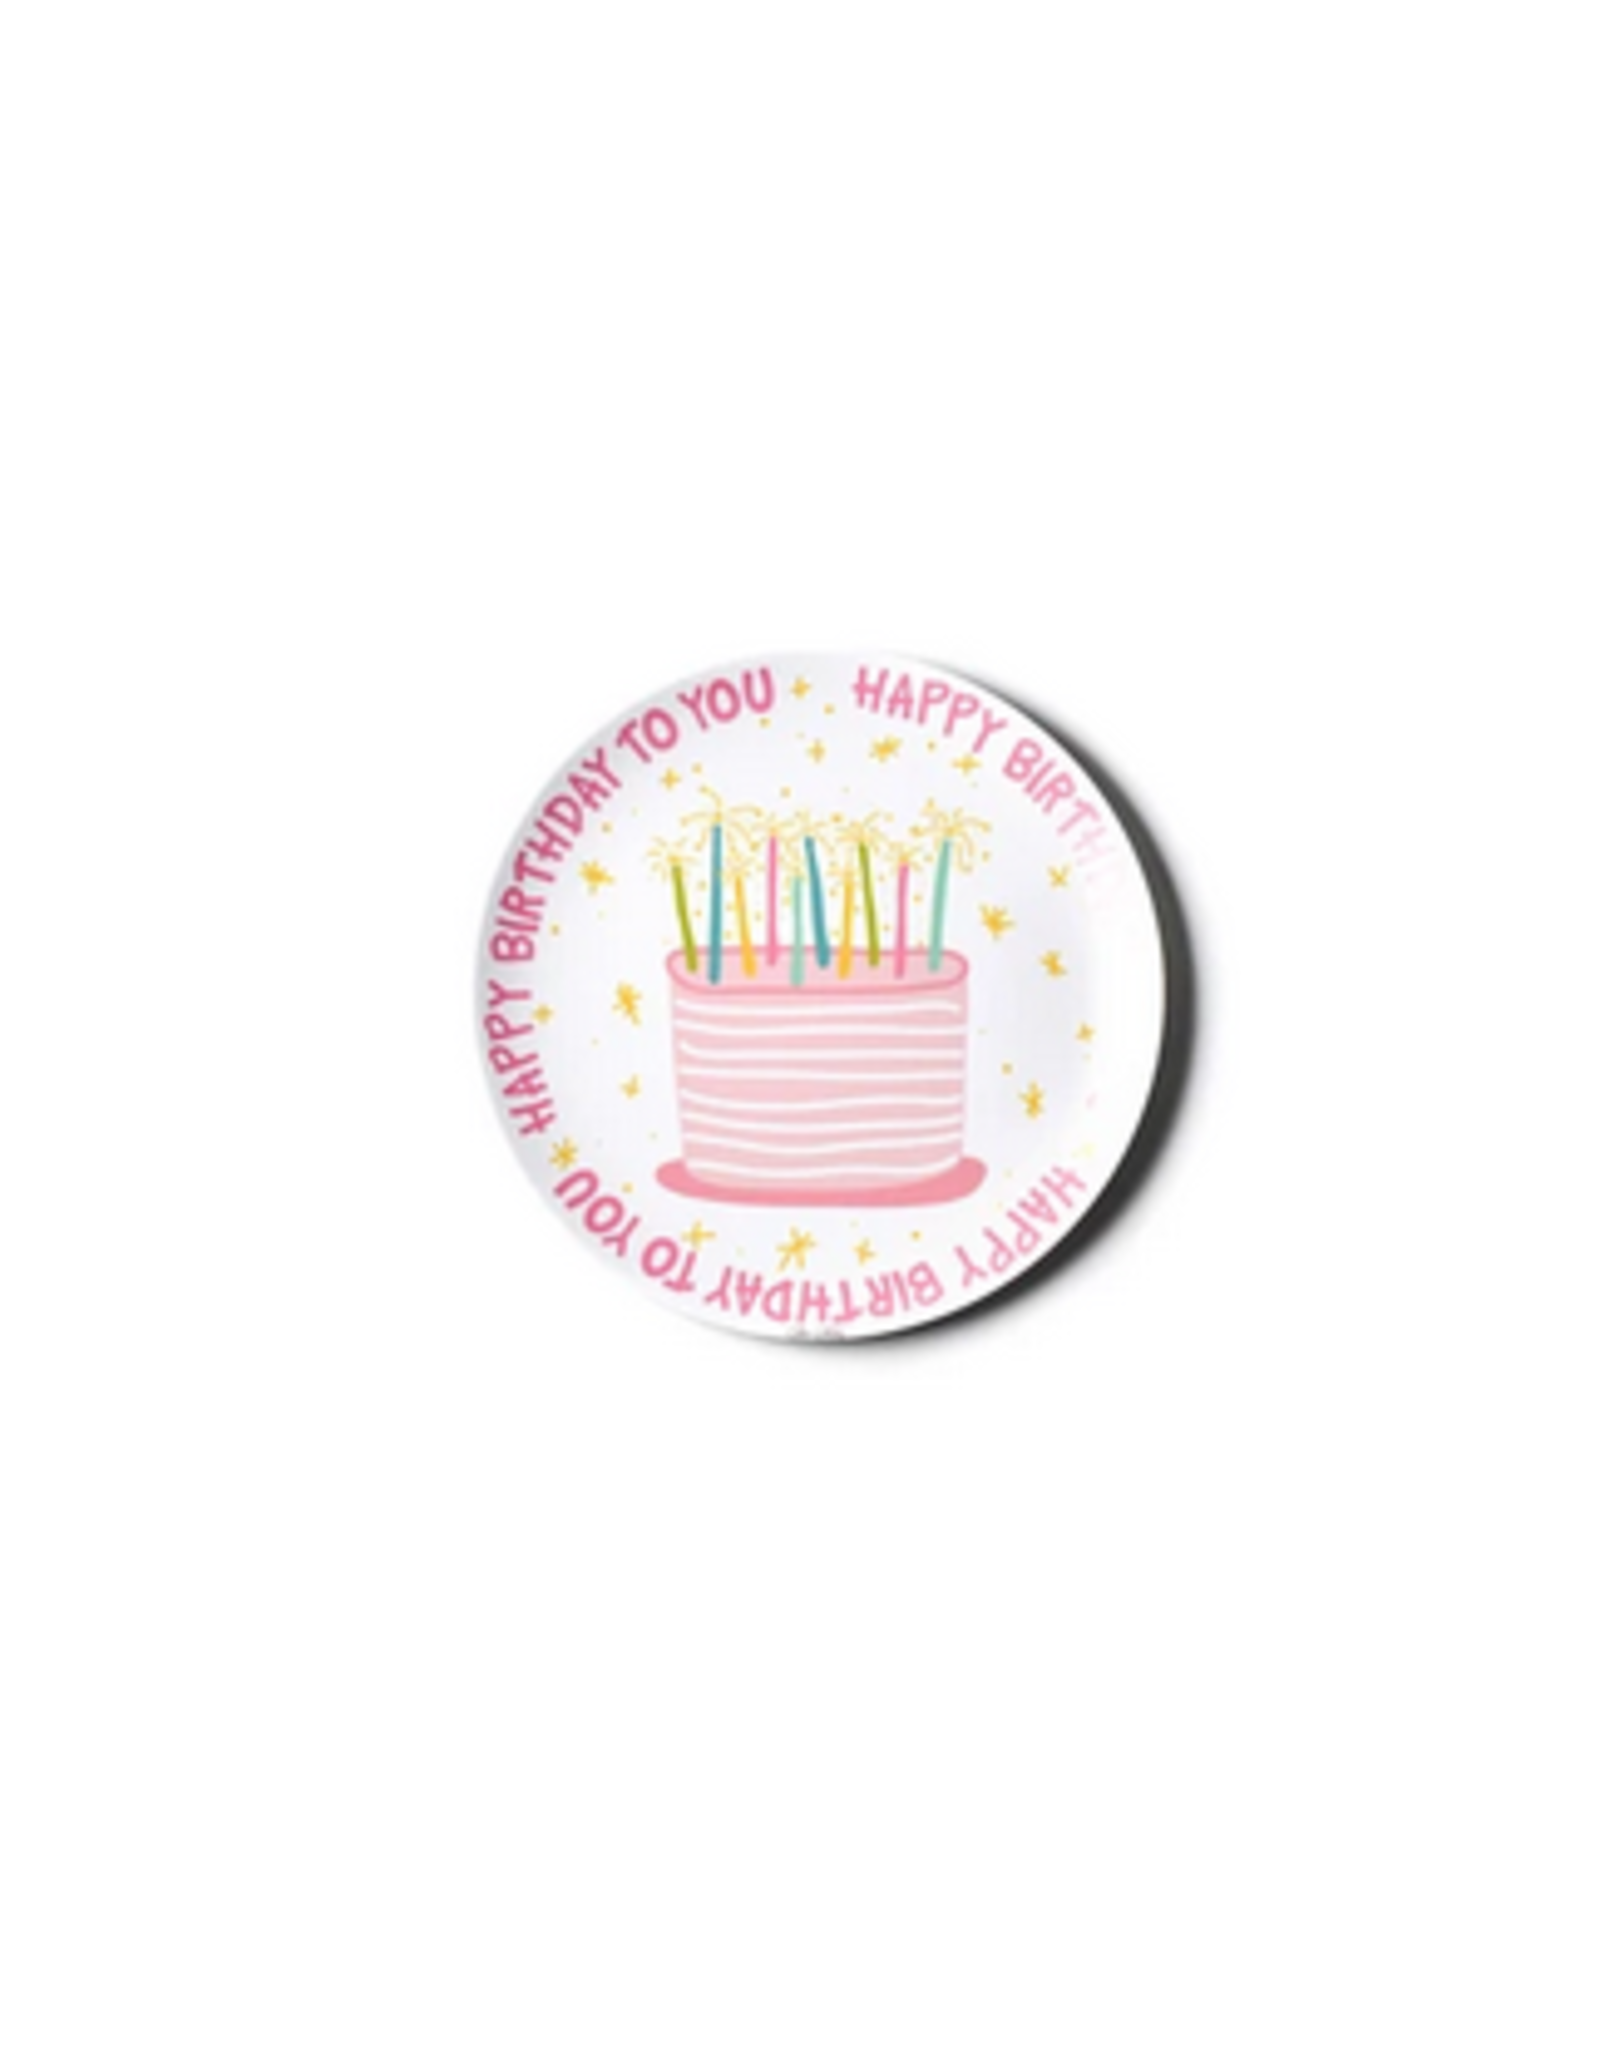 Coton Colors Happy Birthday Melamine Plate in Pink